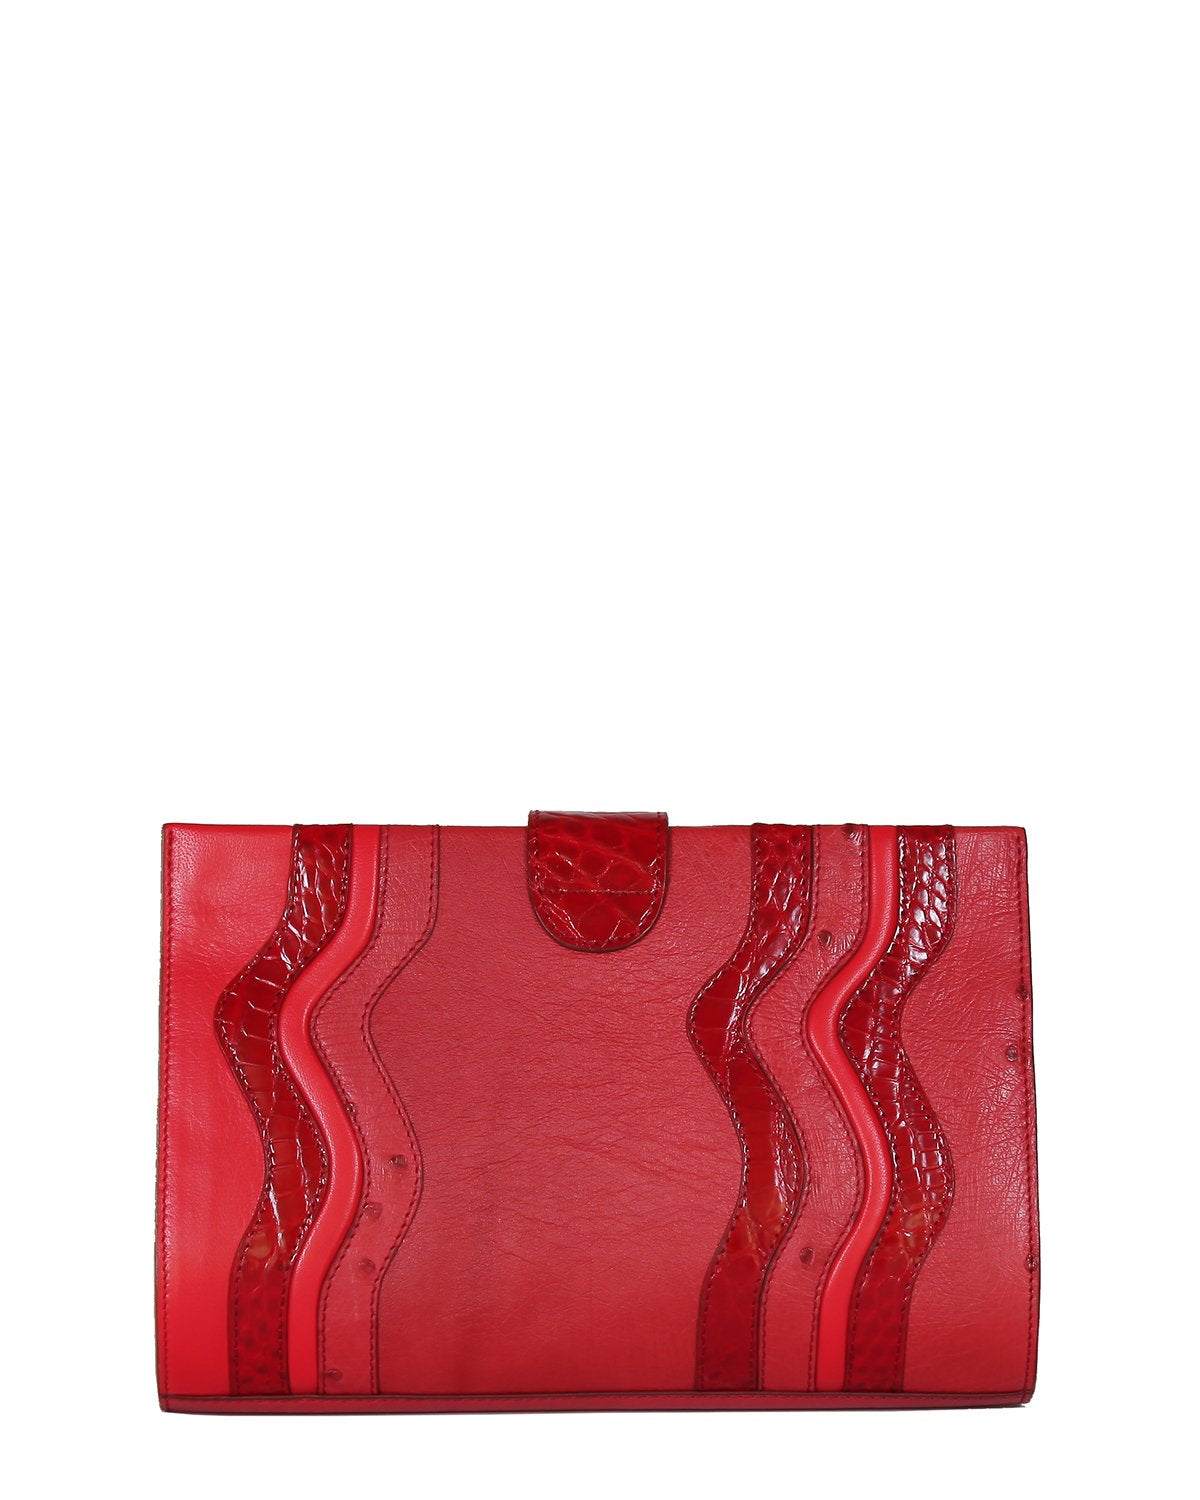 One of a Kind Beautifully Handcrafted Clutch in Genuine Ostrich in Red with Red Genuine alligator wavy Trims Back View